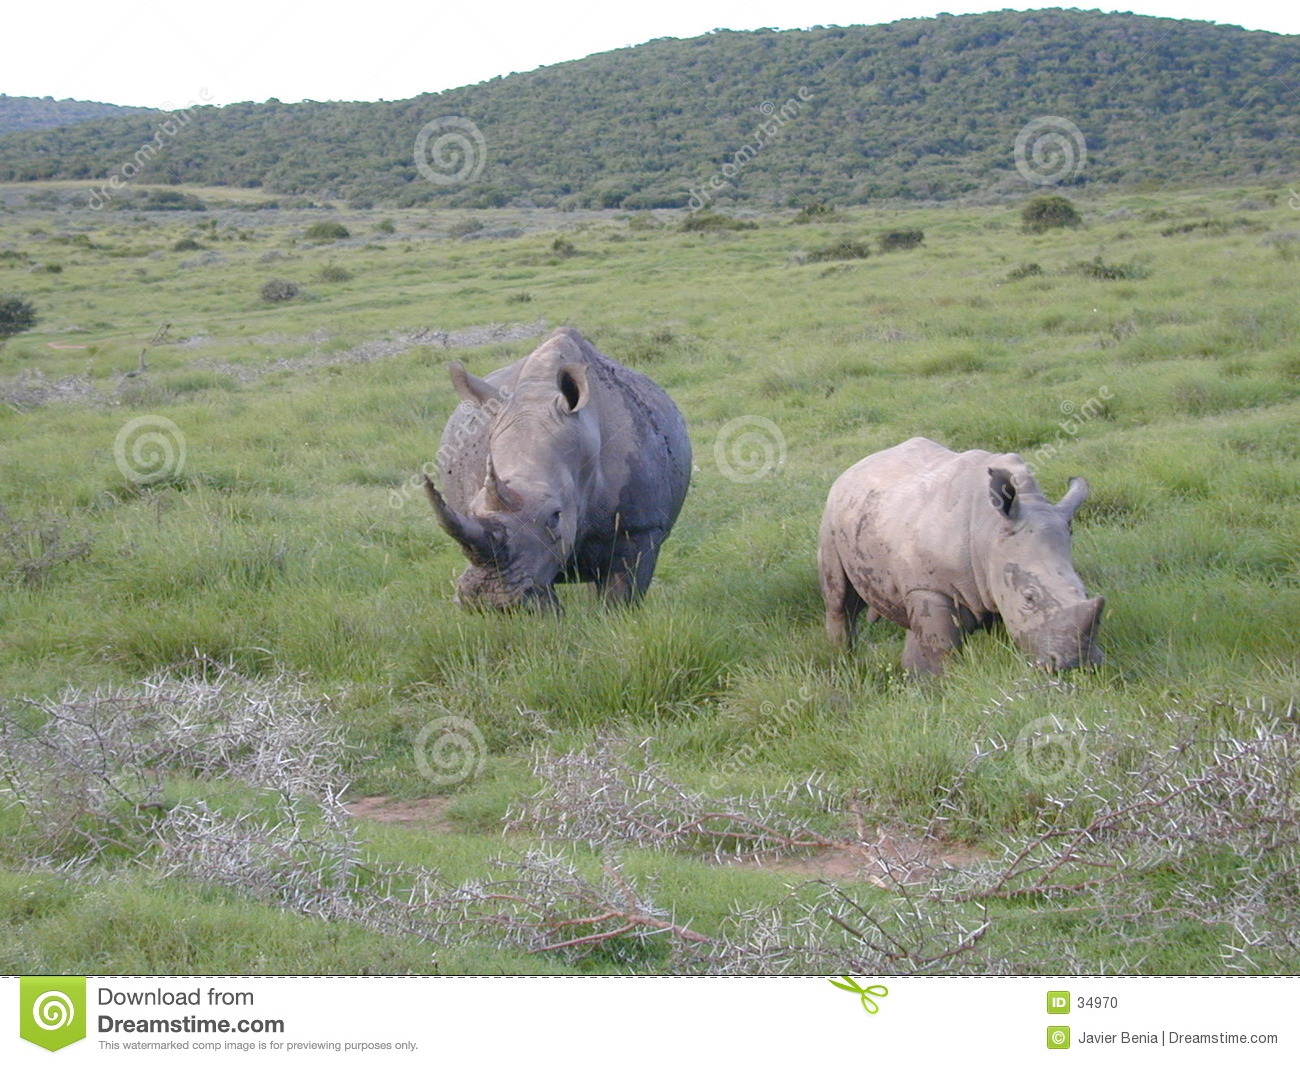 Grand Rhinoceraus